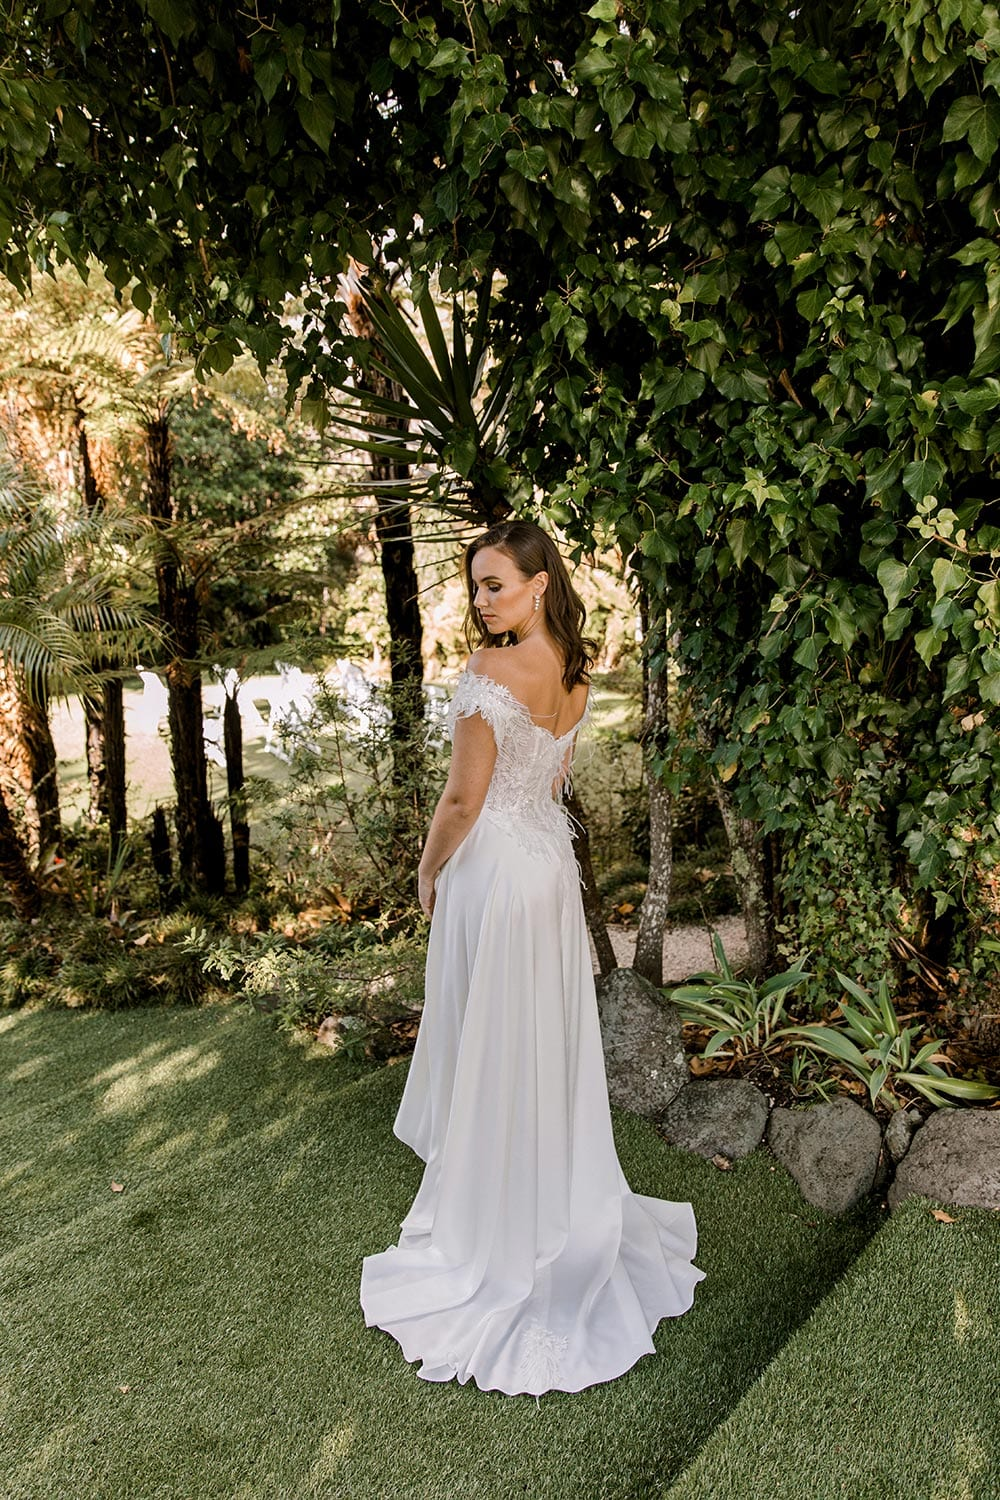 Genevive Wedding Dress from Vinka Design. The soft off-the-shoulder sleeves & semi-sheer structured bodice with hand-appliqued lace and a soft satin skirt make this a romantic & dreamy wedding dress. Back detail of dress with train, photographed at Tui Hills.